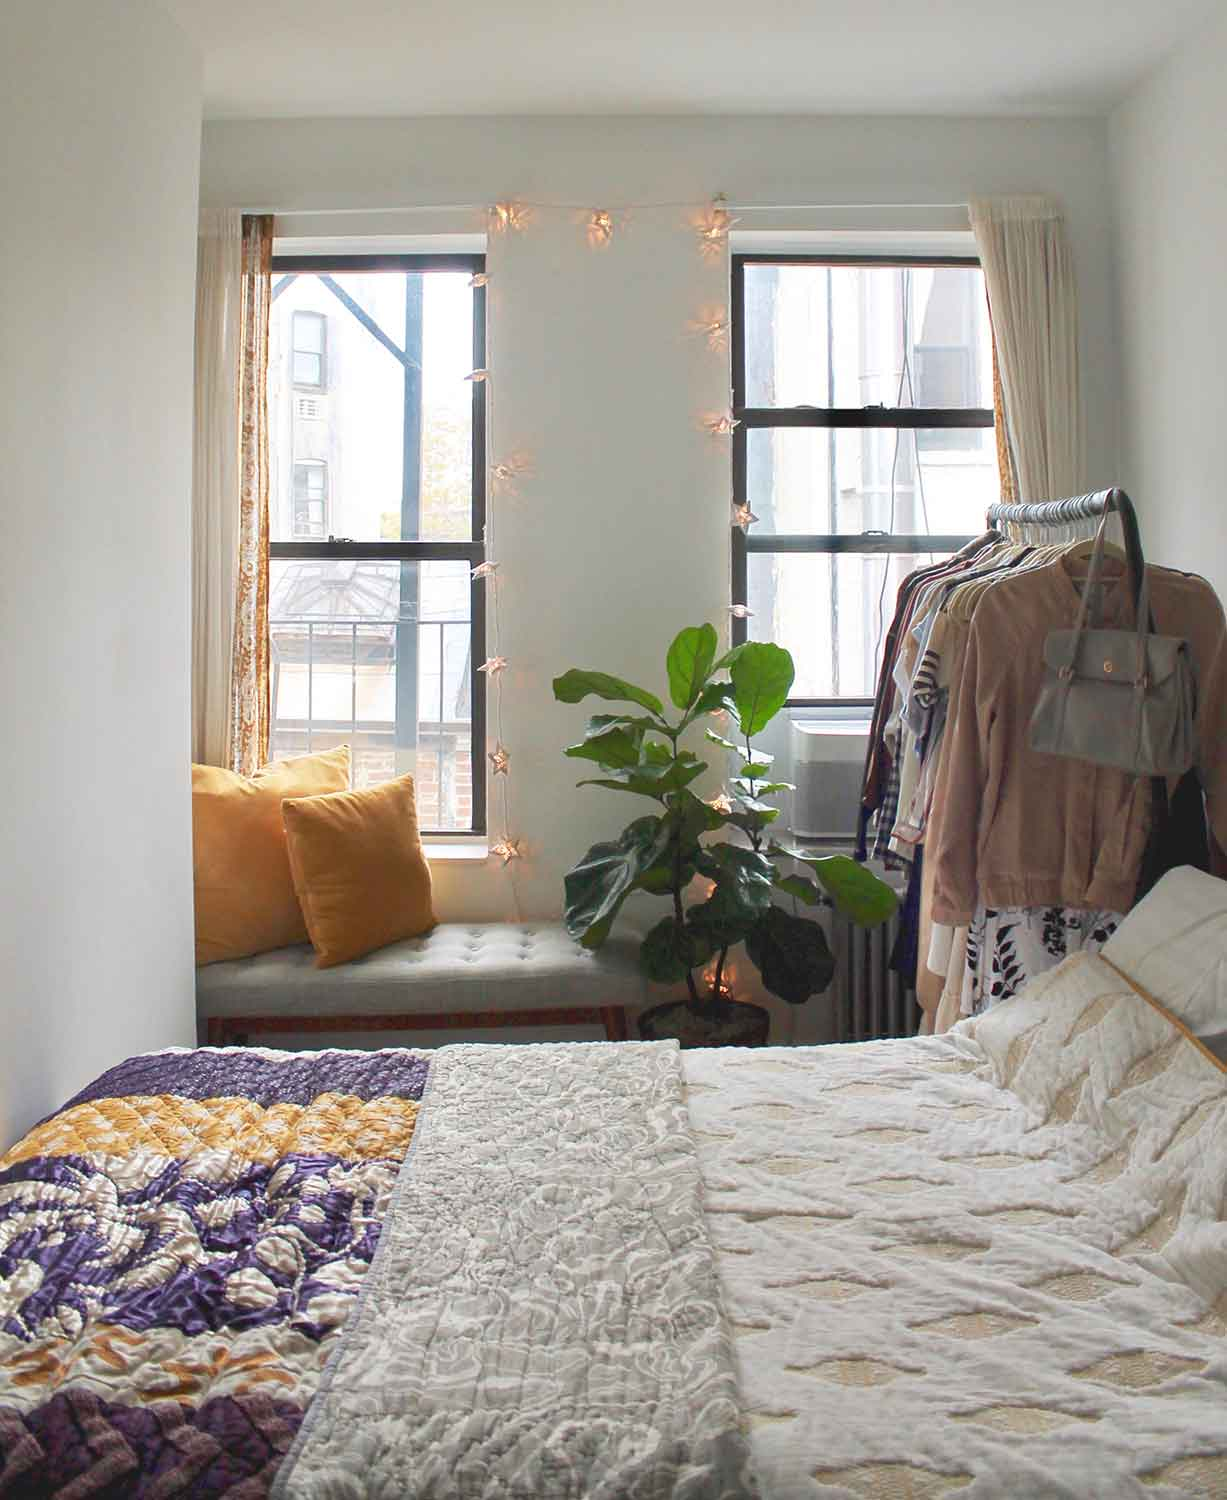 Bedding:  Anthropologie  // Window Seat:  West Elm  // Throw Pillows:  World Market  // Twinkle Lights:  World Market  // Curtains:  Urban Outfitters  // Clothing Rack:  IKEA  // House Plant:  Fiddle Leaf Fig Tree